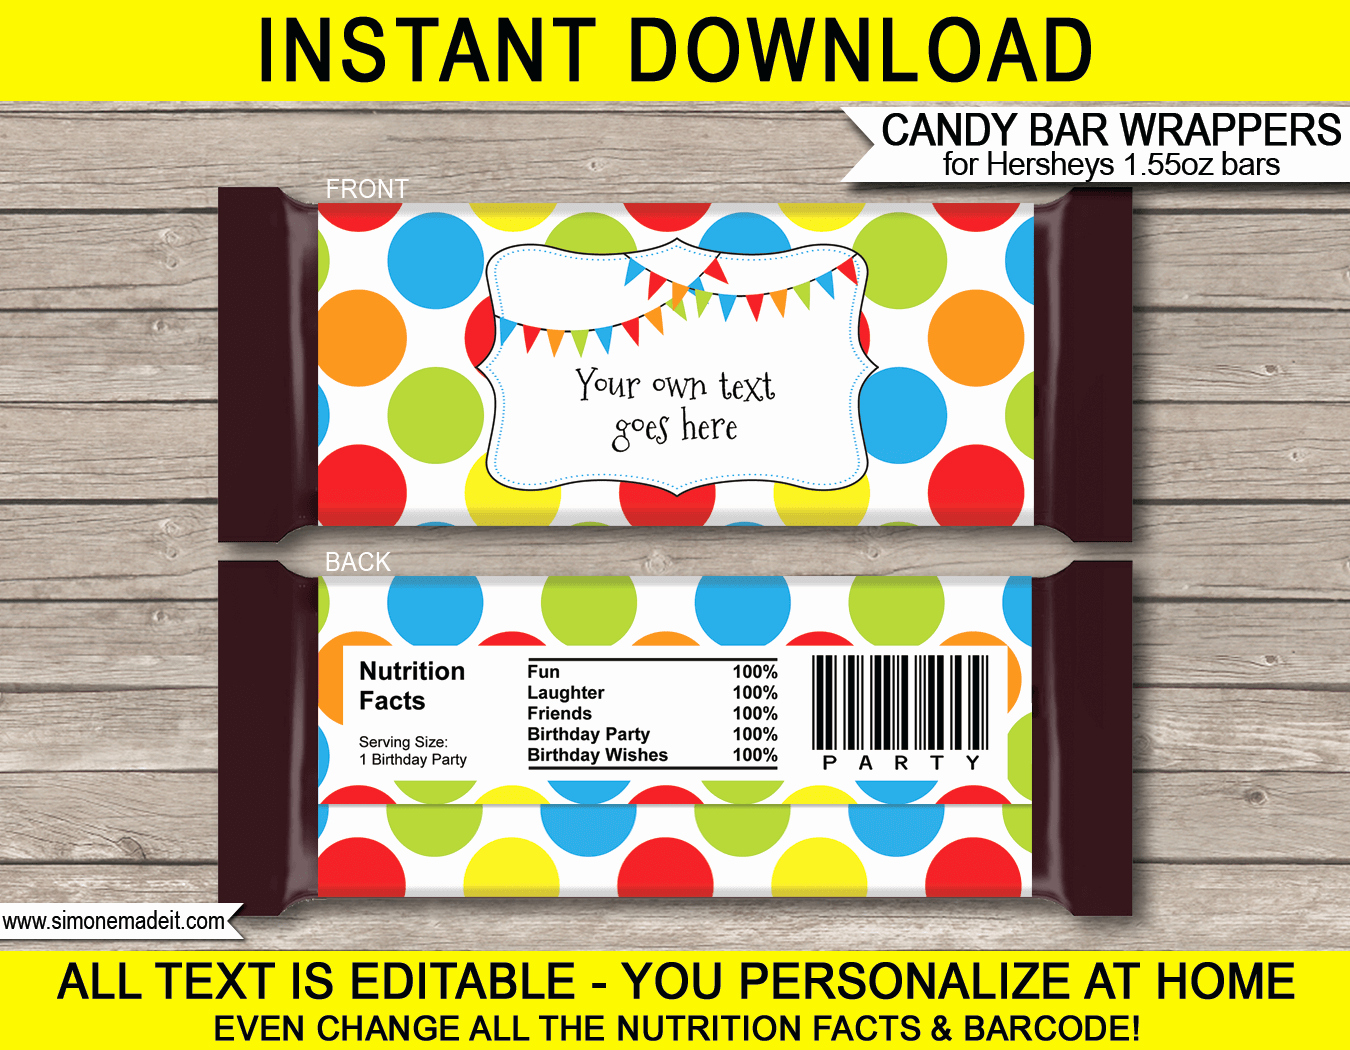 Candy Wrapper Template New Polkadot Hershey Candy Bar Wrappers